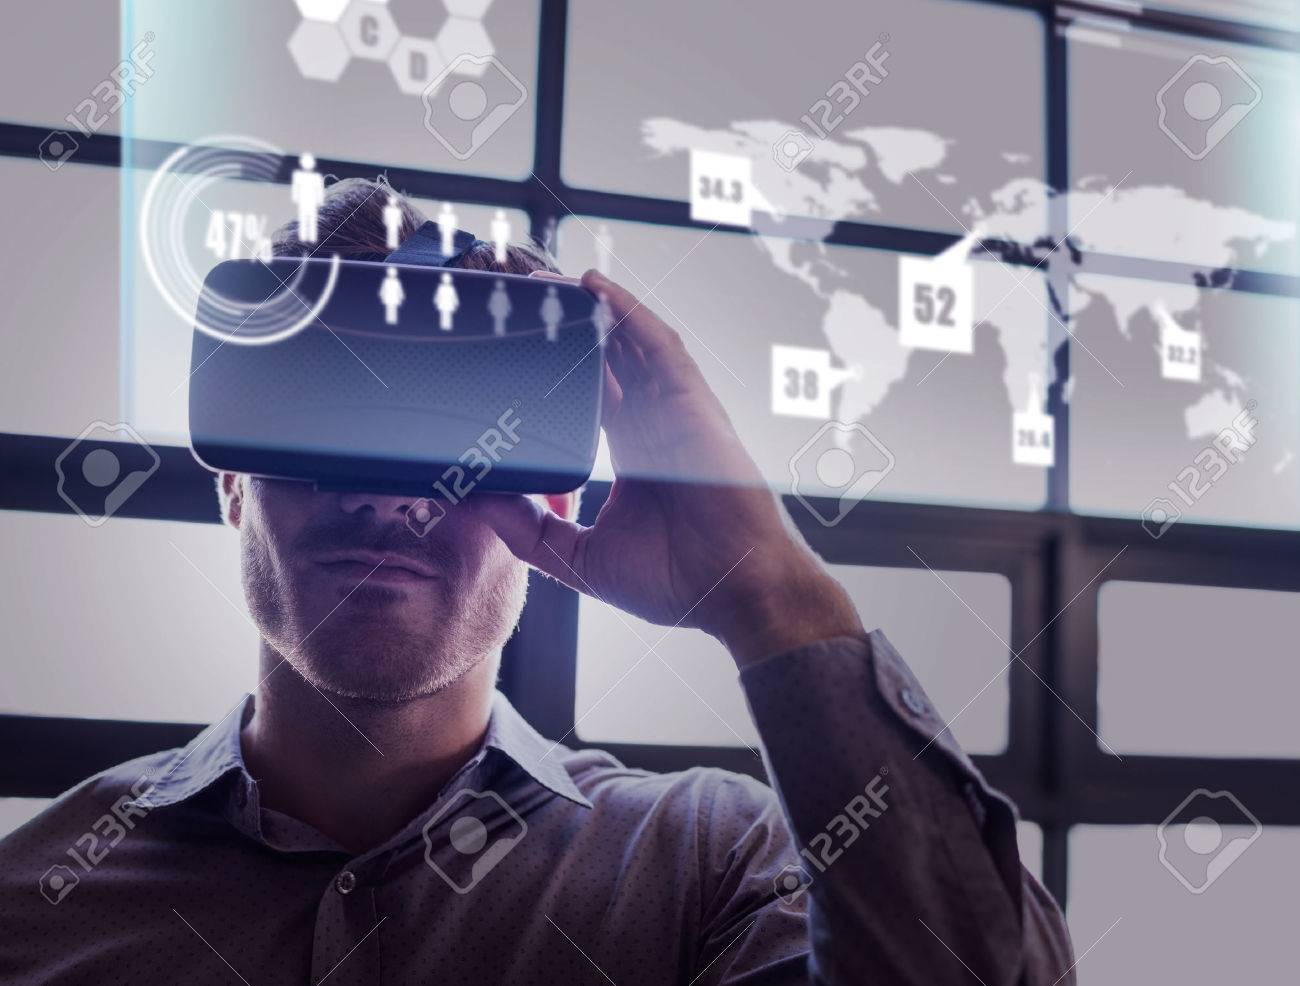 Abstract technology interface against businessman using virtual reality device Banque d'images - 59424001